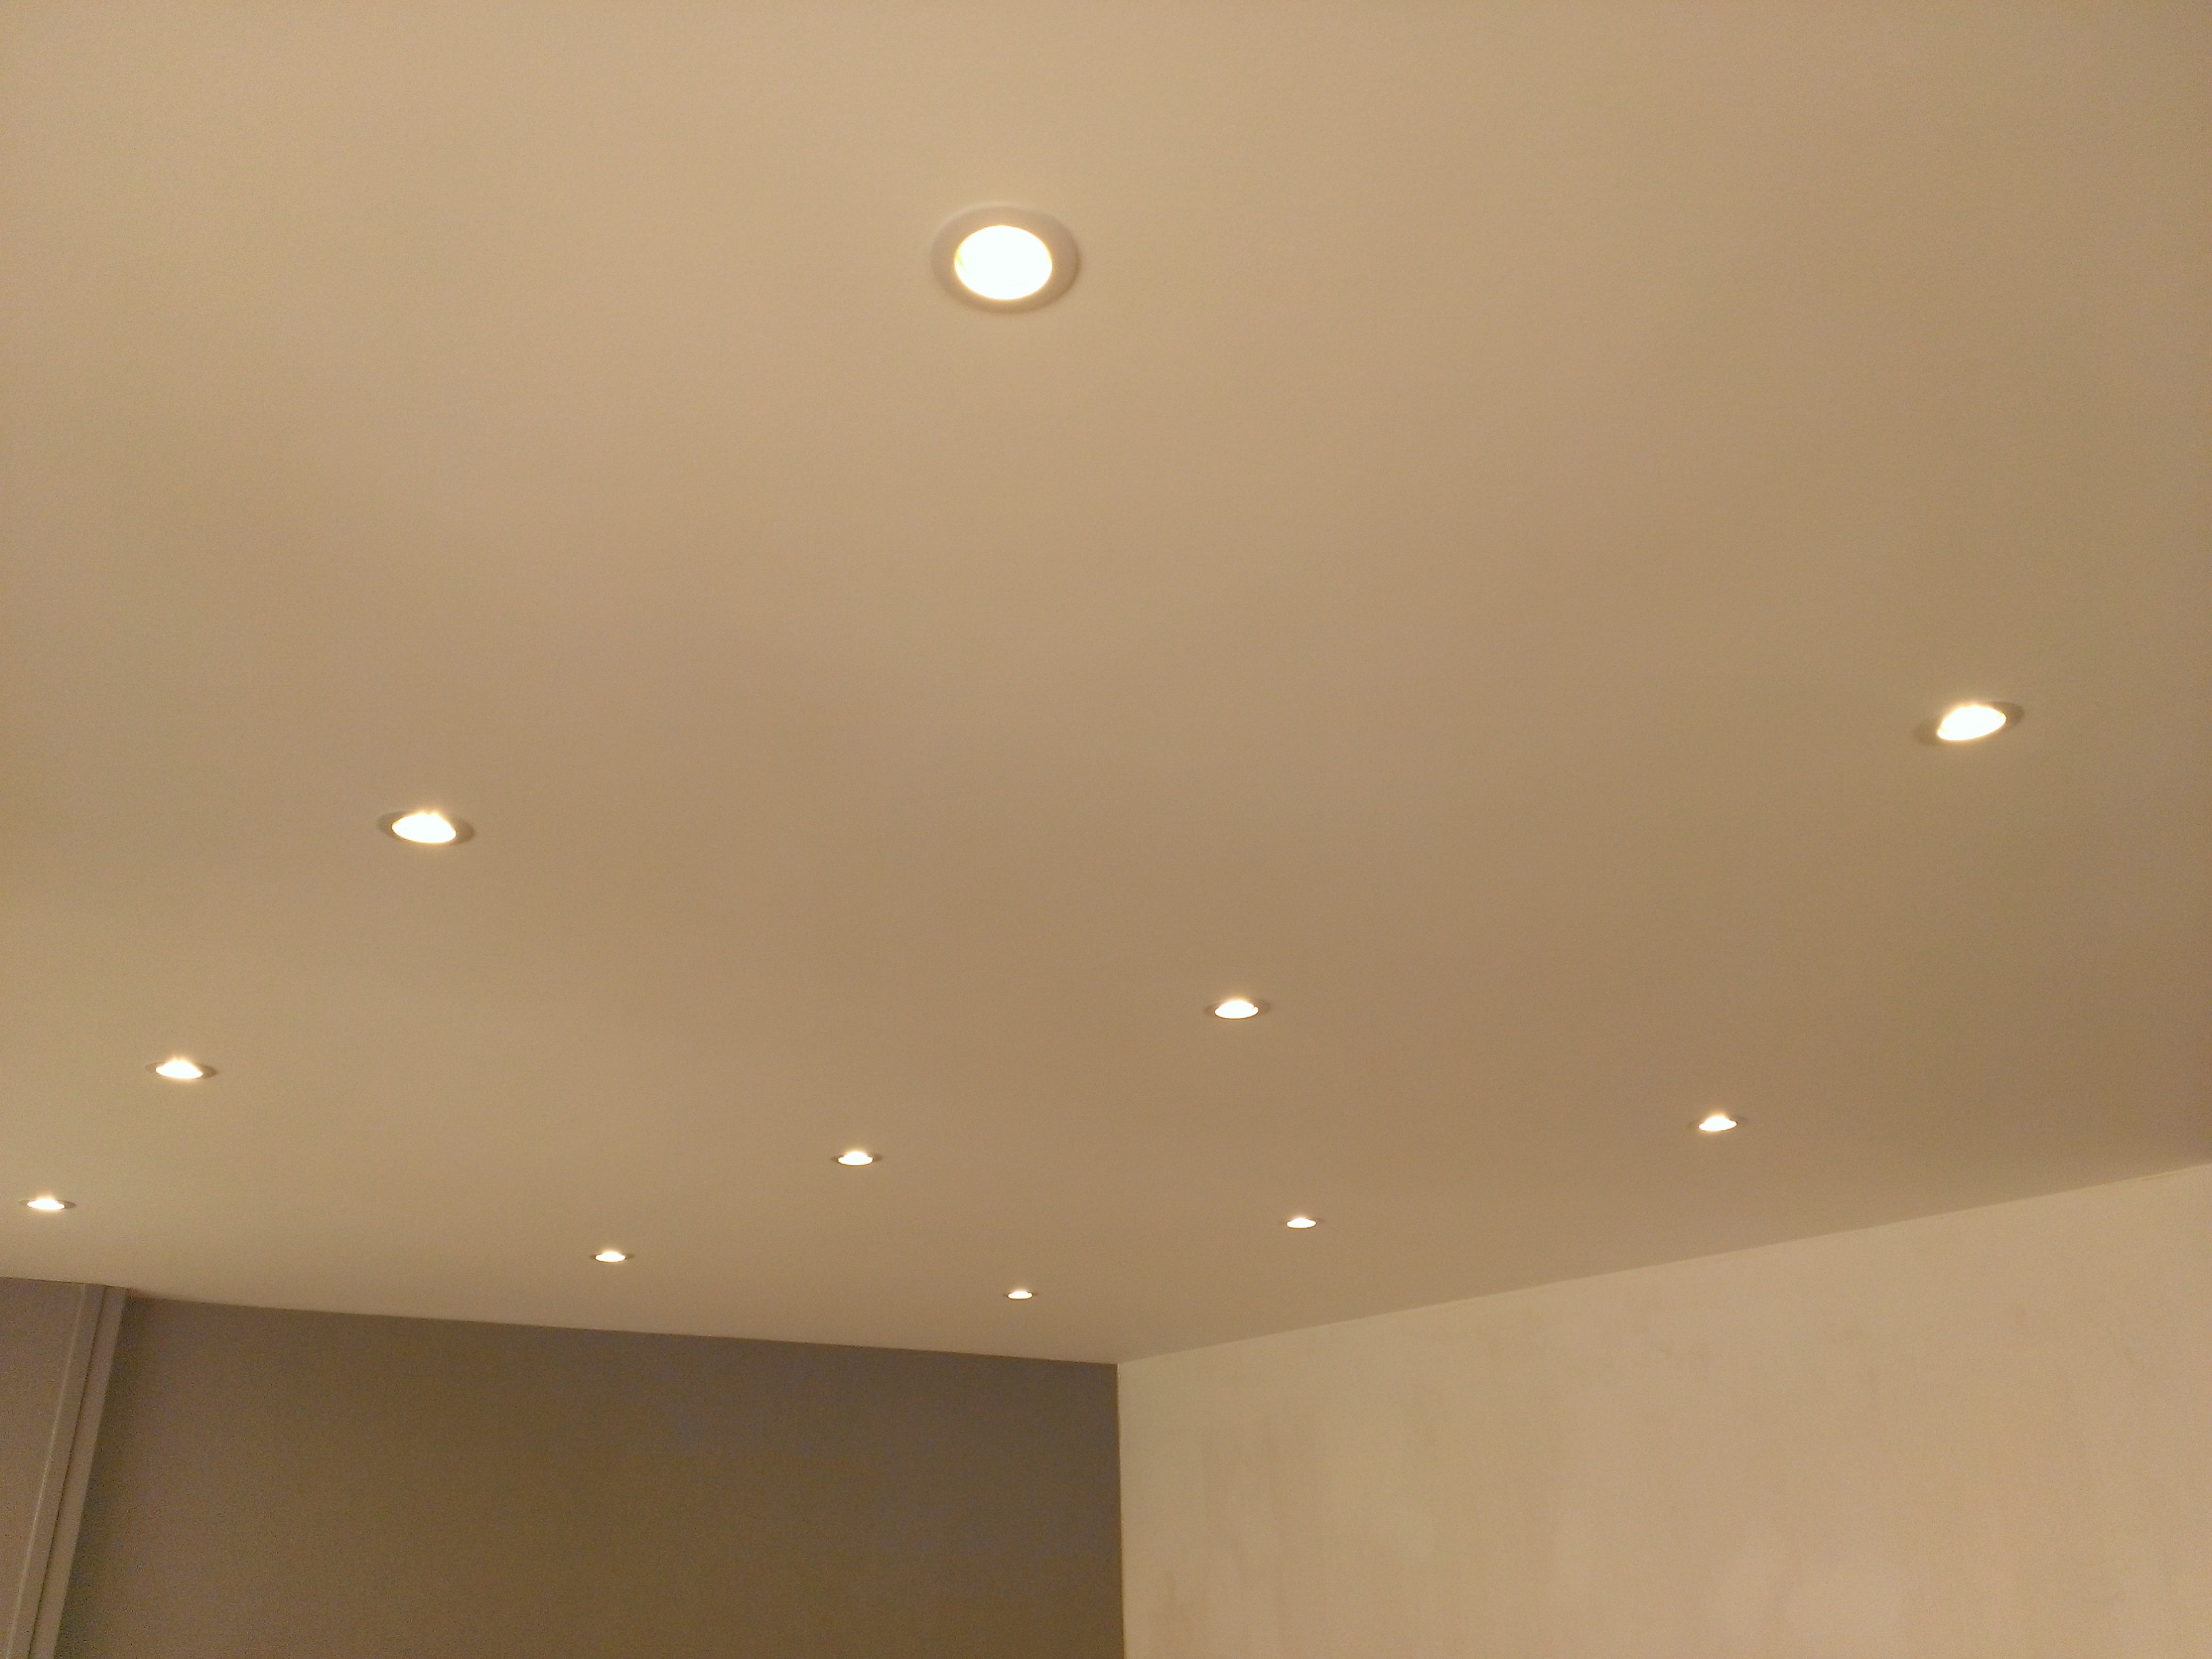 Eclairage - Comment installer des spots led au plafond ...